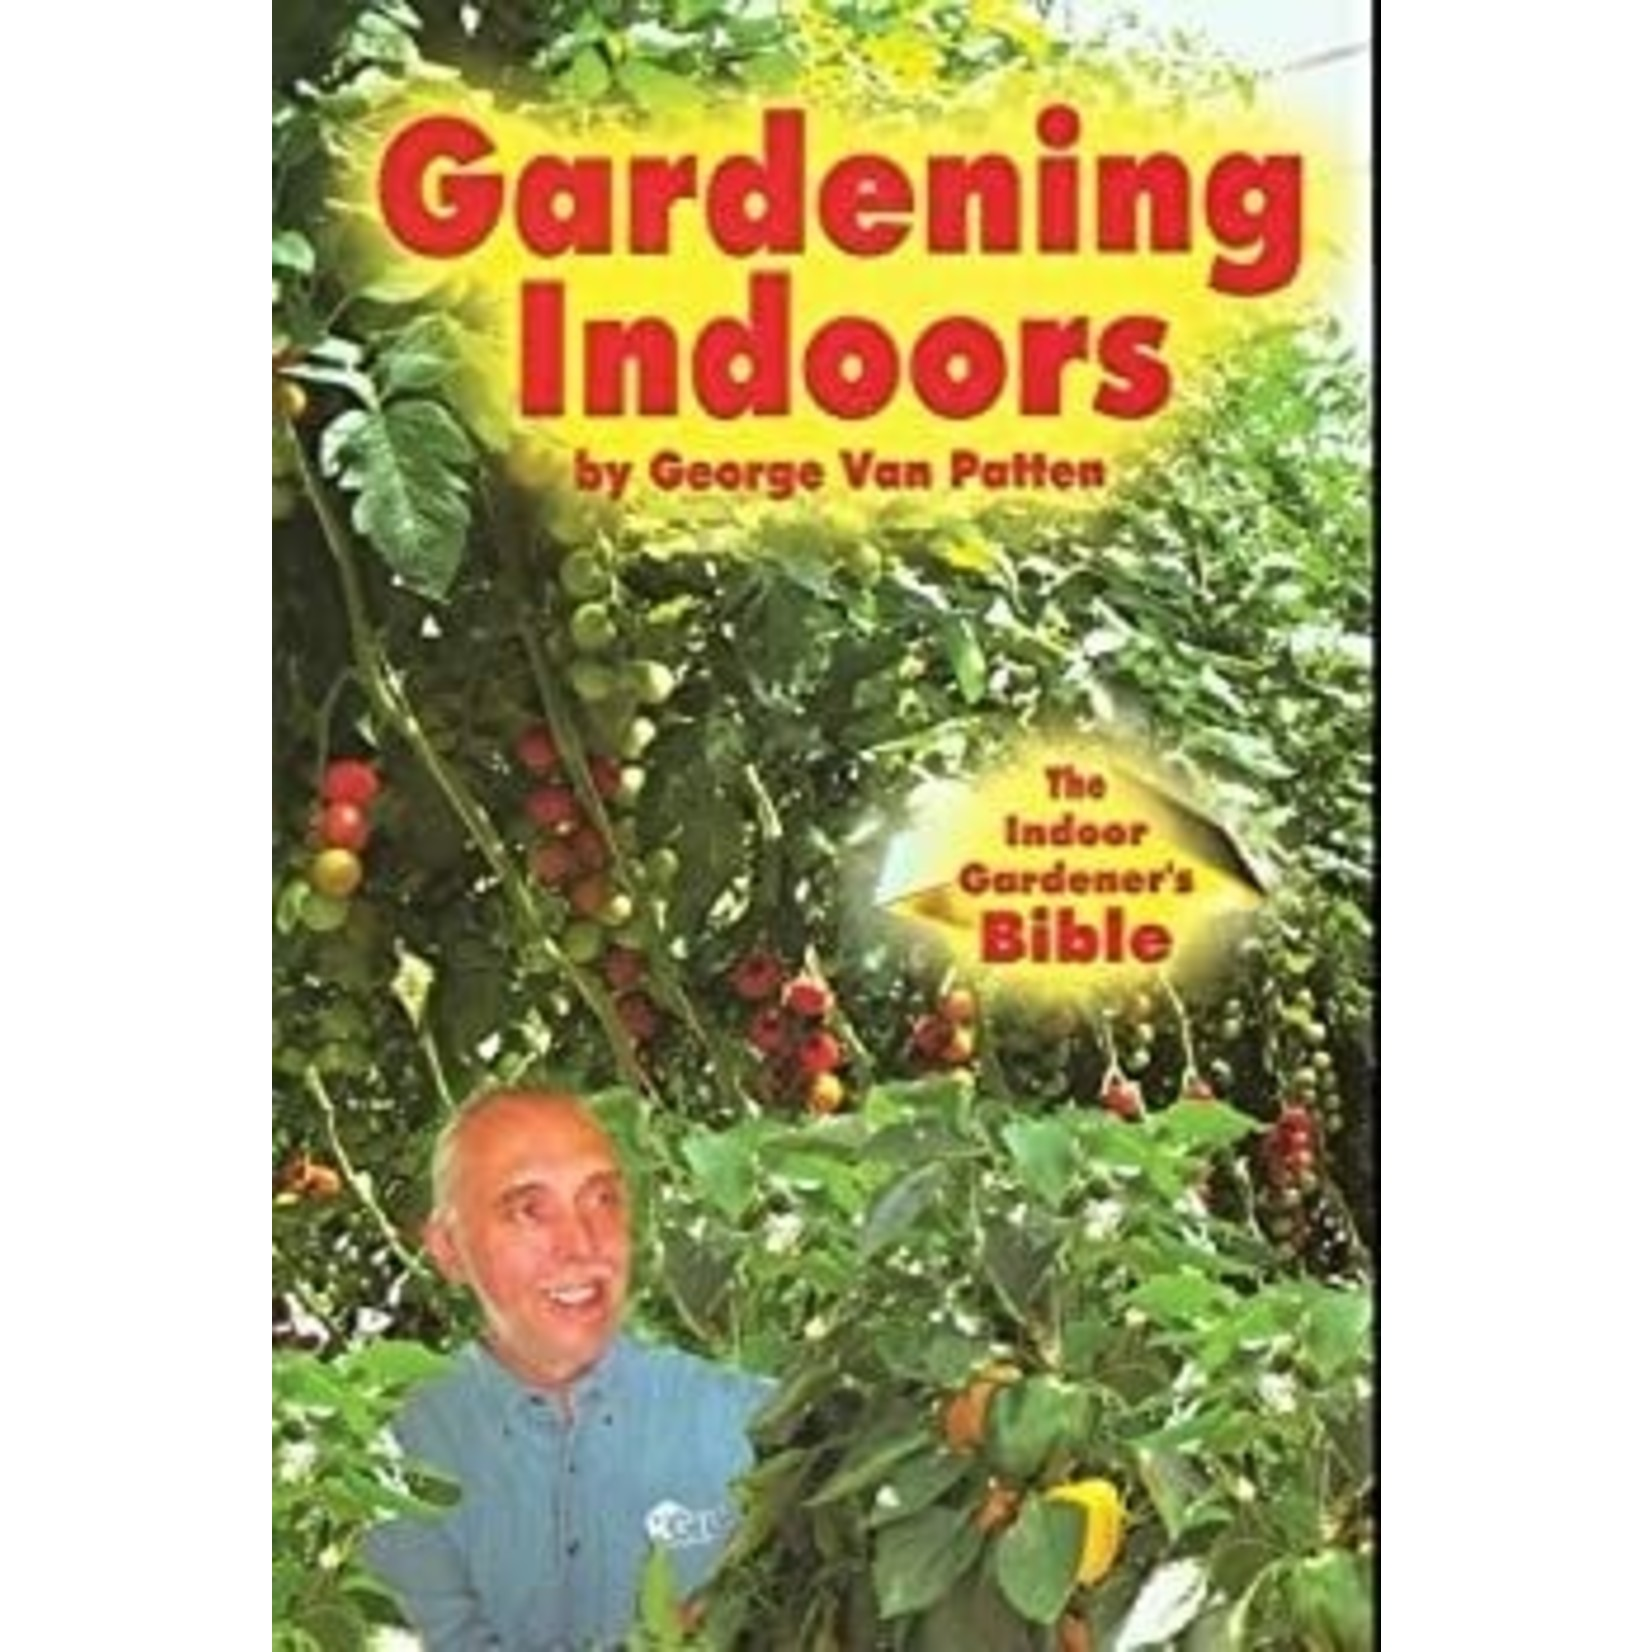 GARDENING INDOOR BIBLE